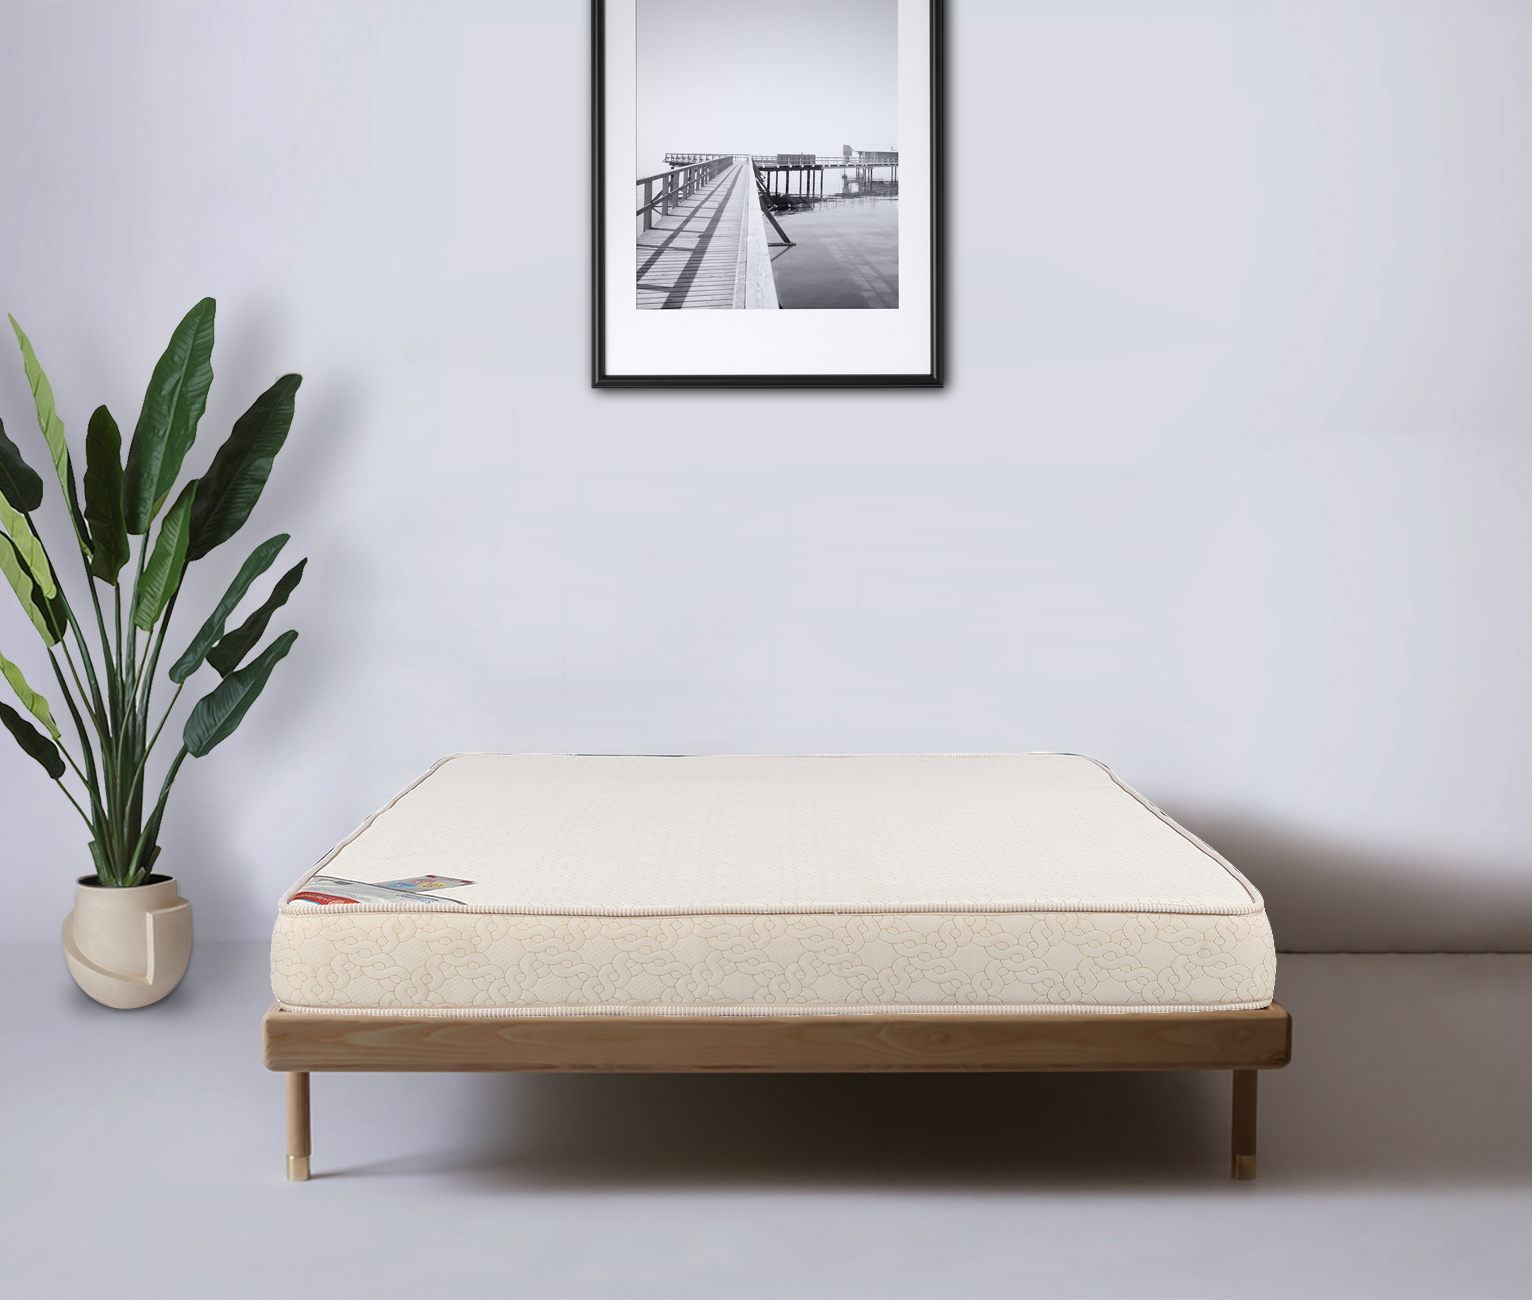 Spinepro Coir & Foam Queen Bed Mattress (78*60*5) in Cream Colour by HomeTown